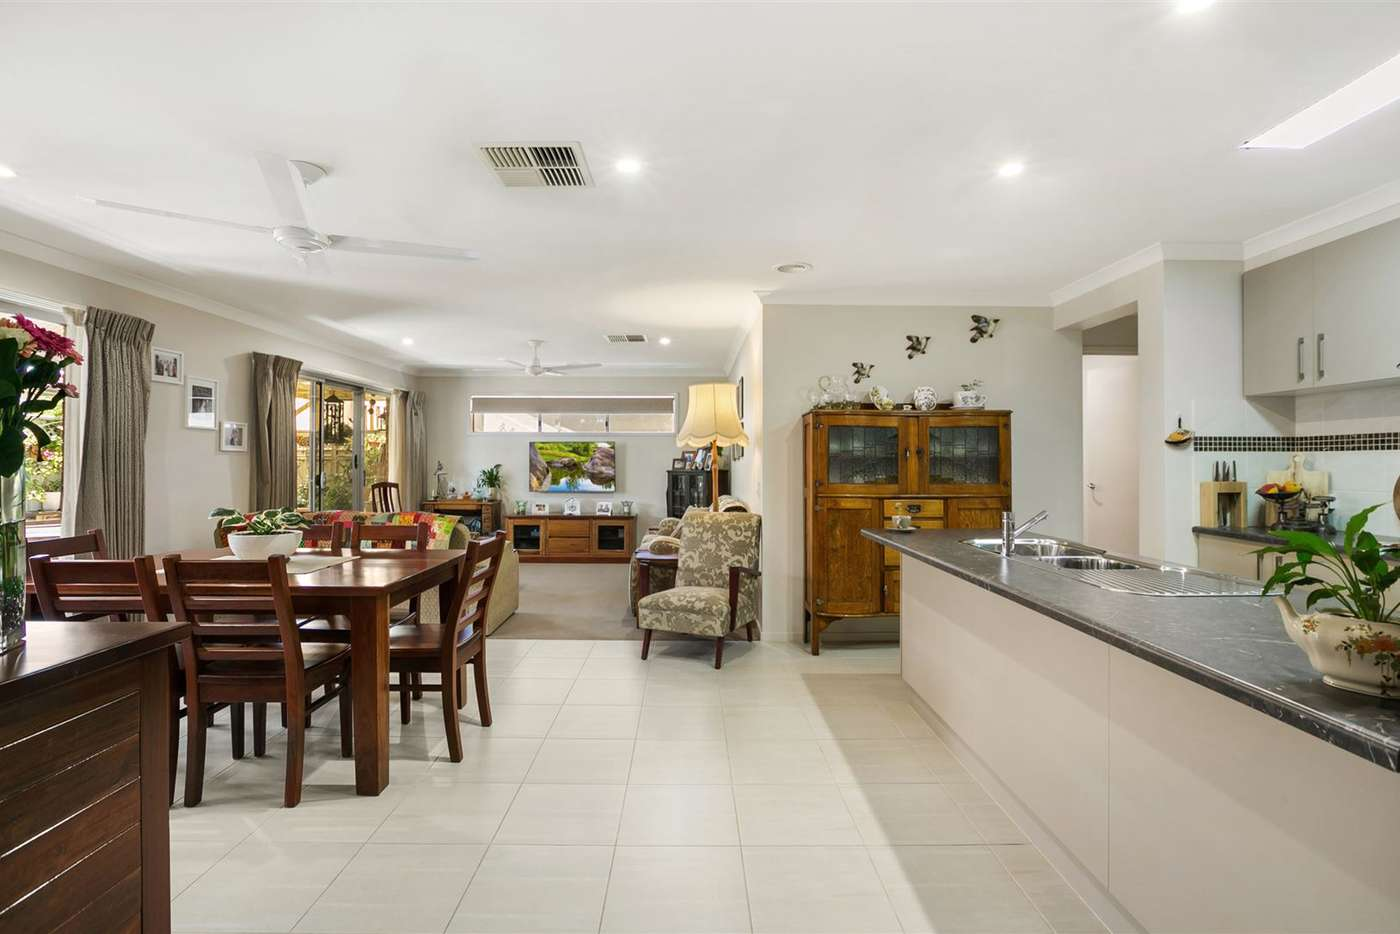 Seventh view of Homely house listing, 4 Gardner Crt, Moama NSW 2731